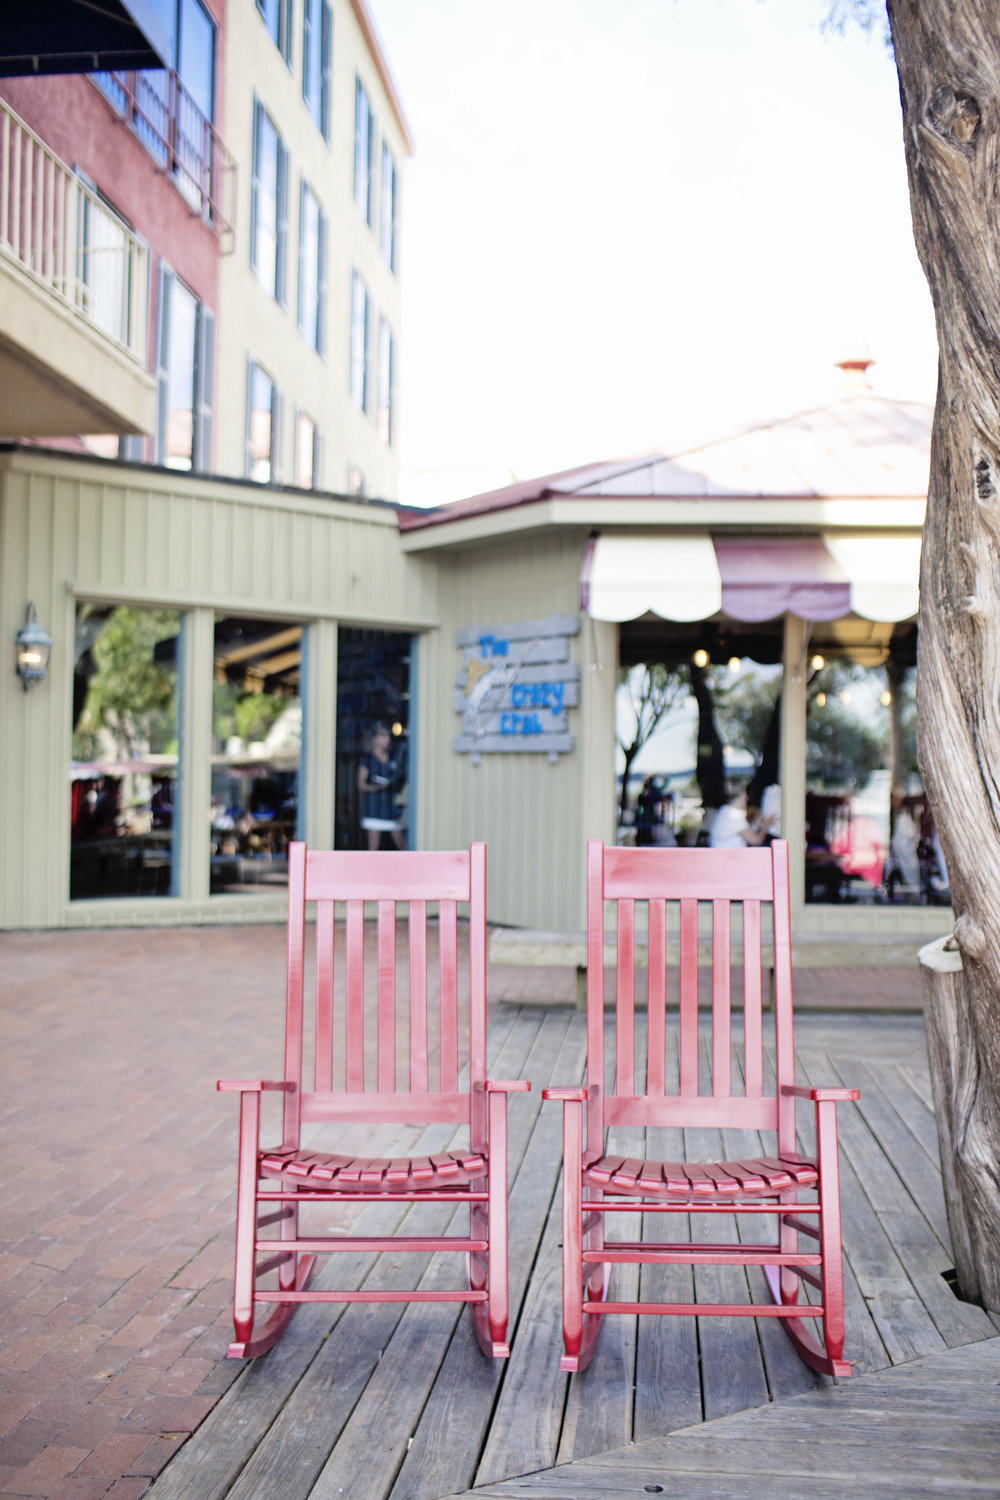 rocking chairs.jpg